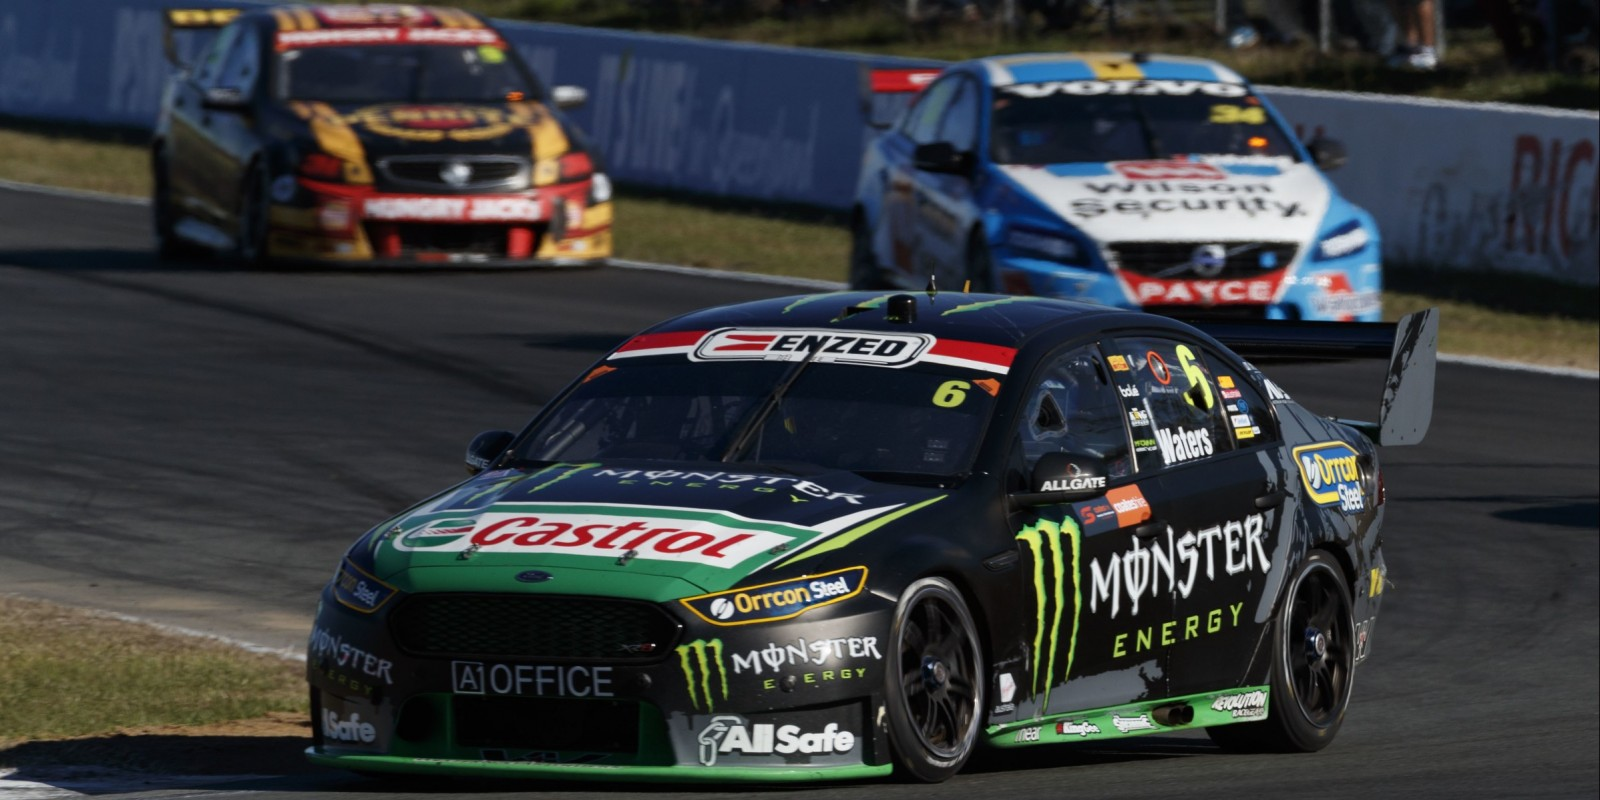 Cameron Waters competes in the 2016 Supercars season in Ipswich